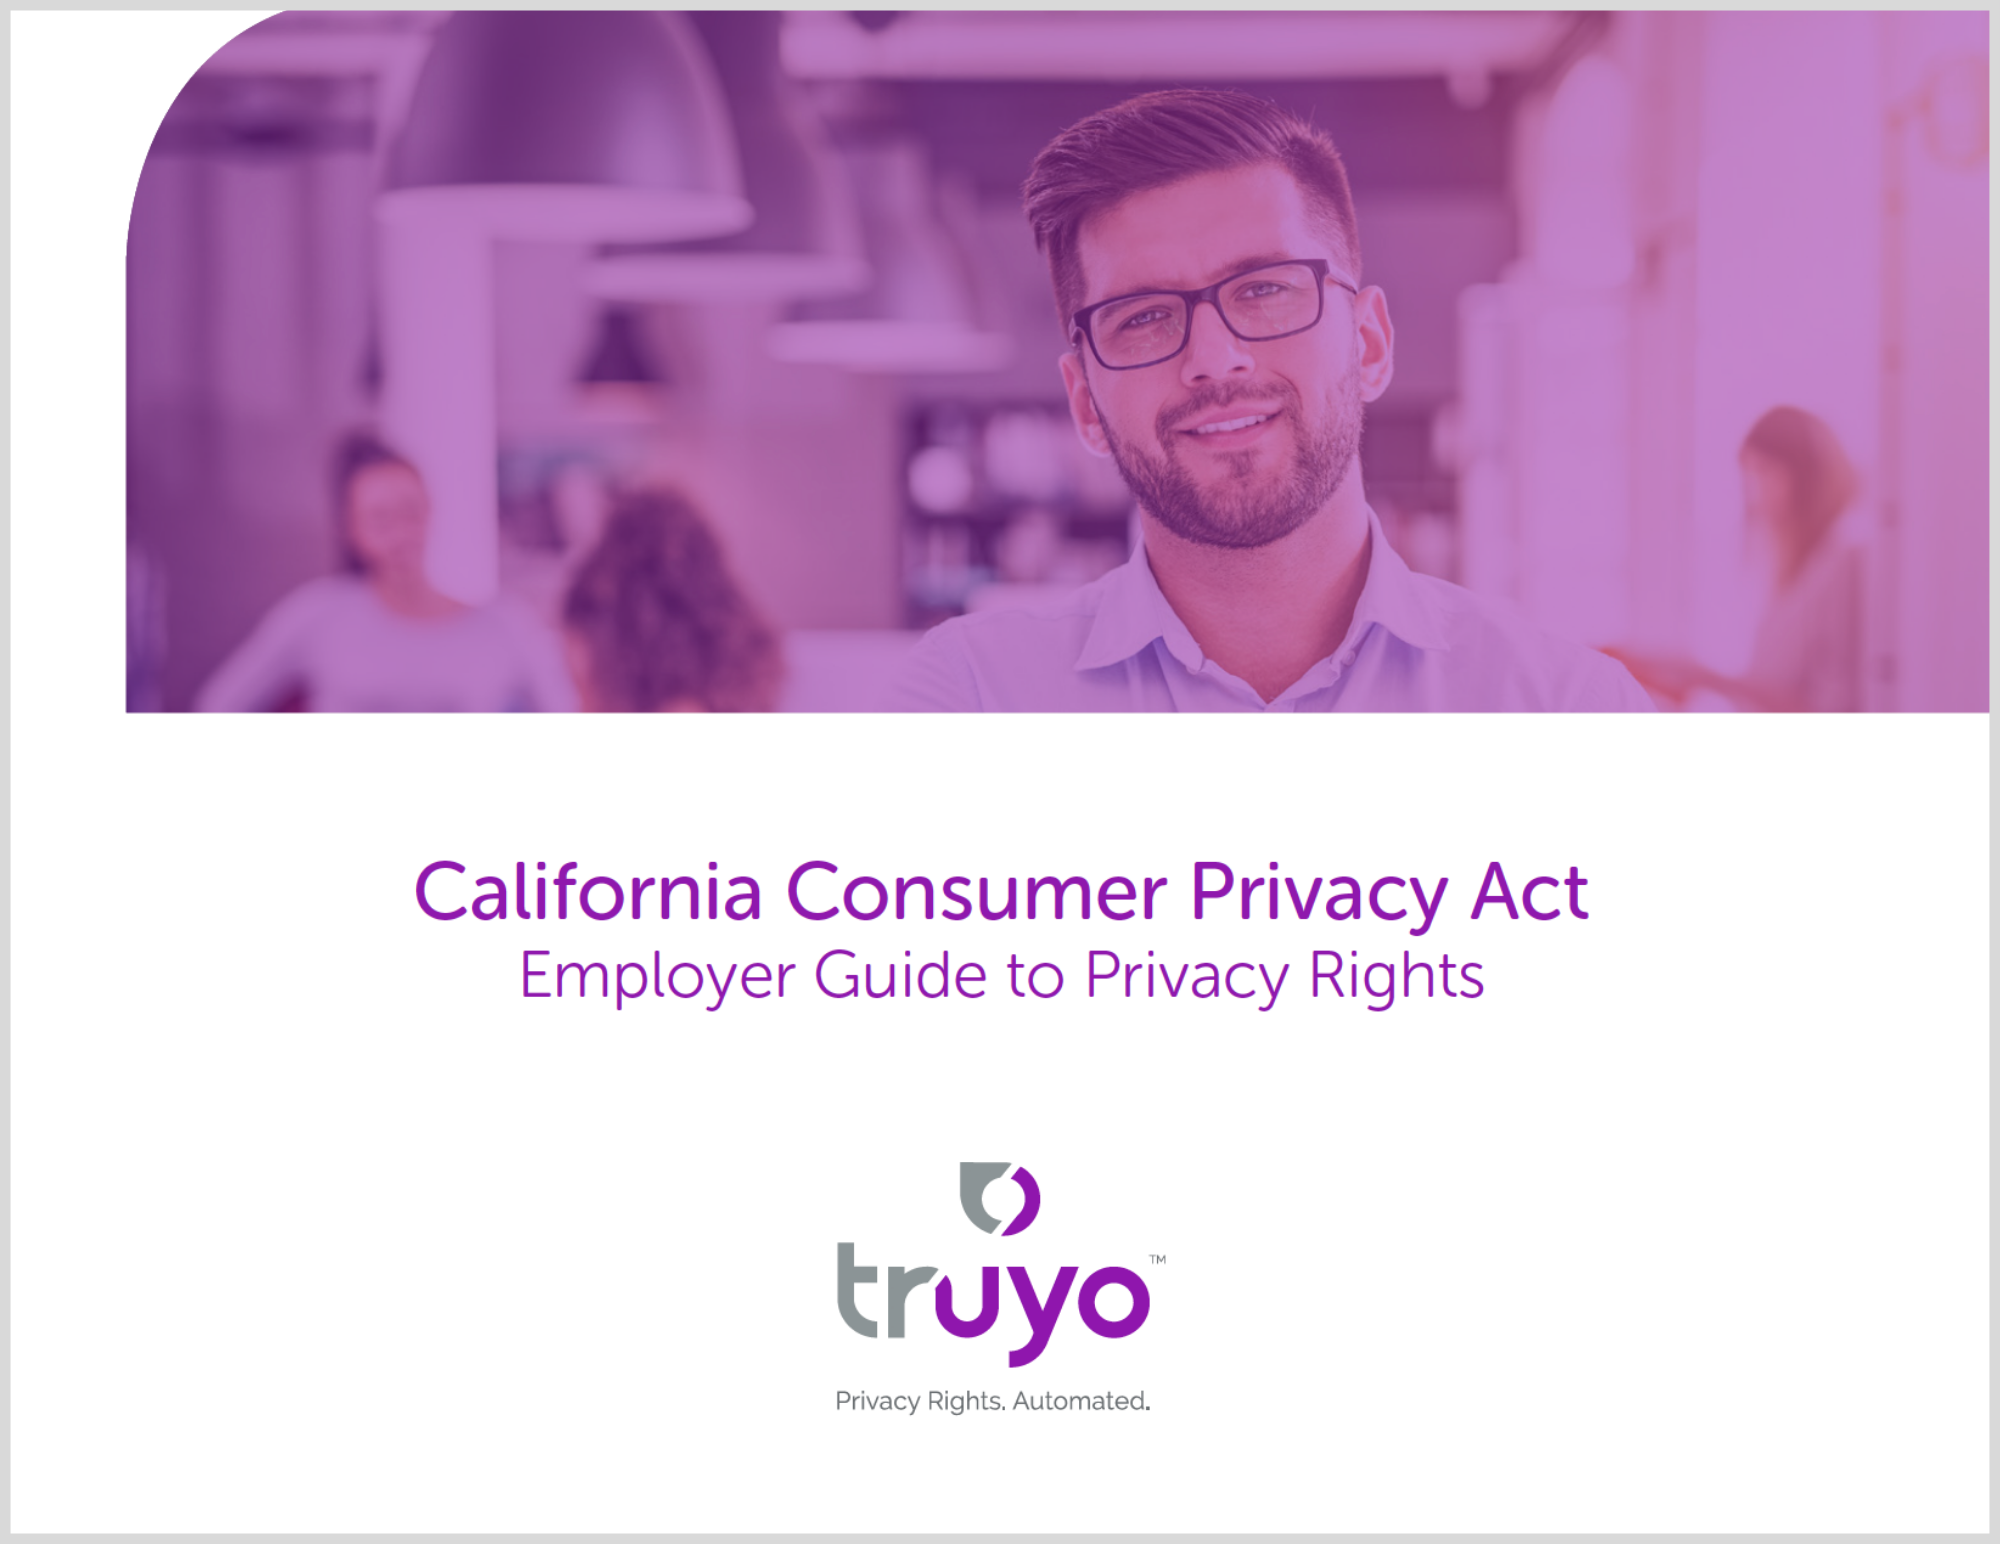 CCPA Employer Guide to Privacy Rights